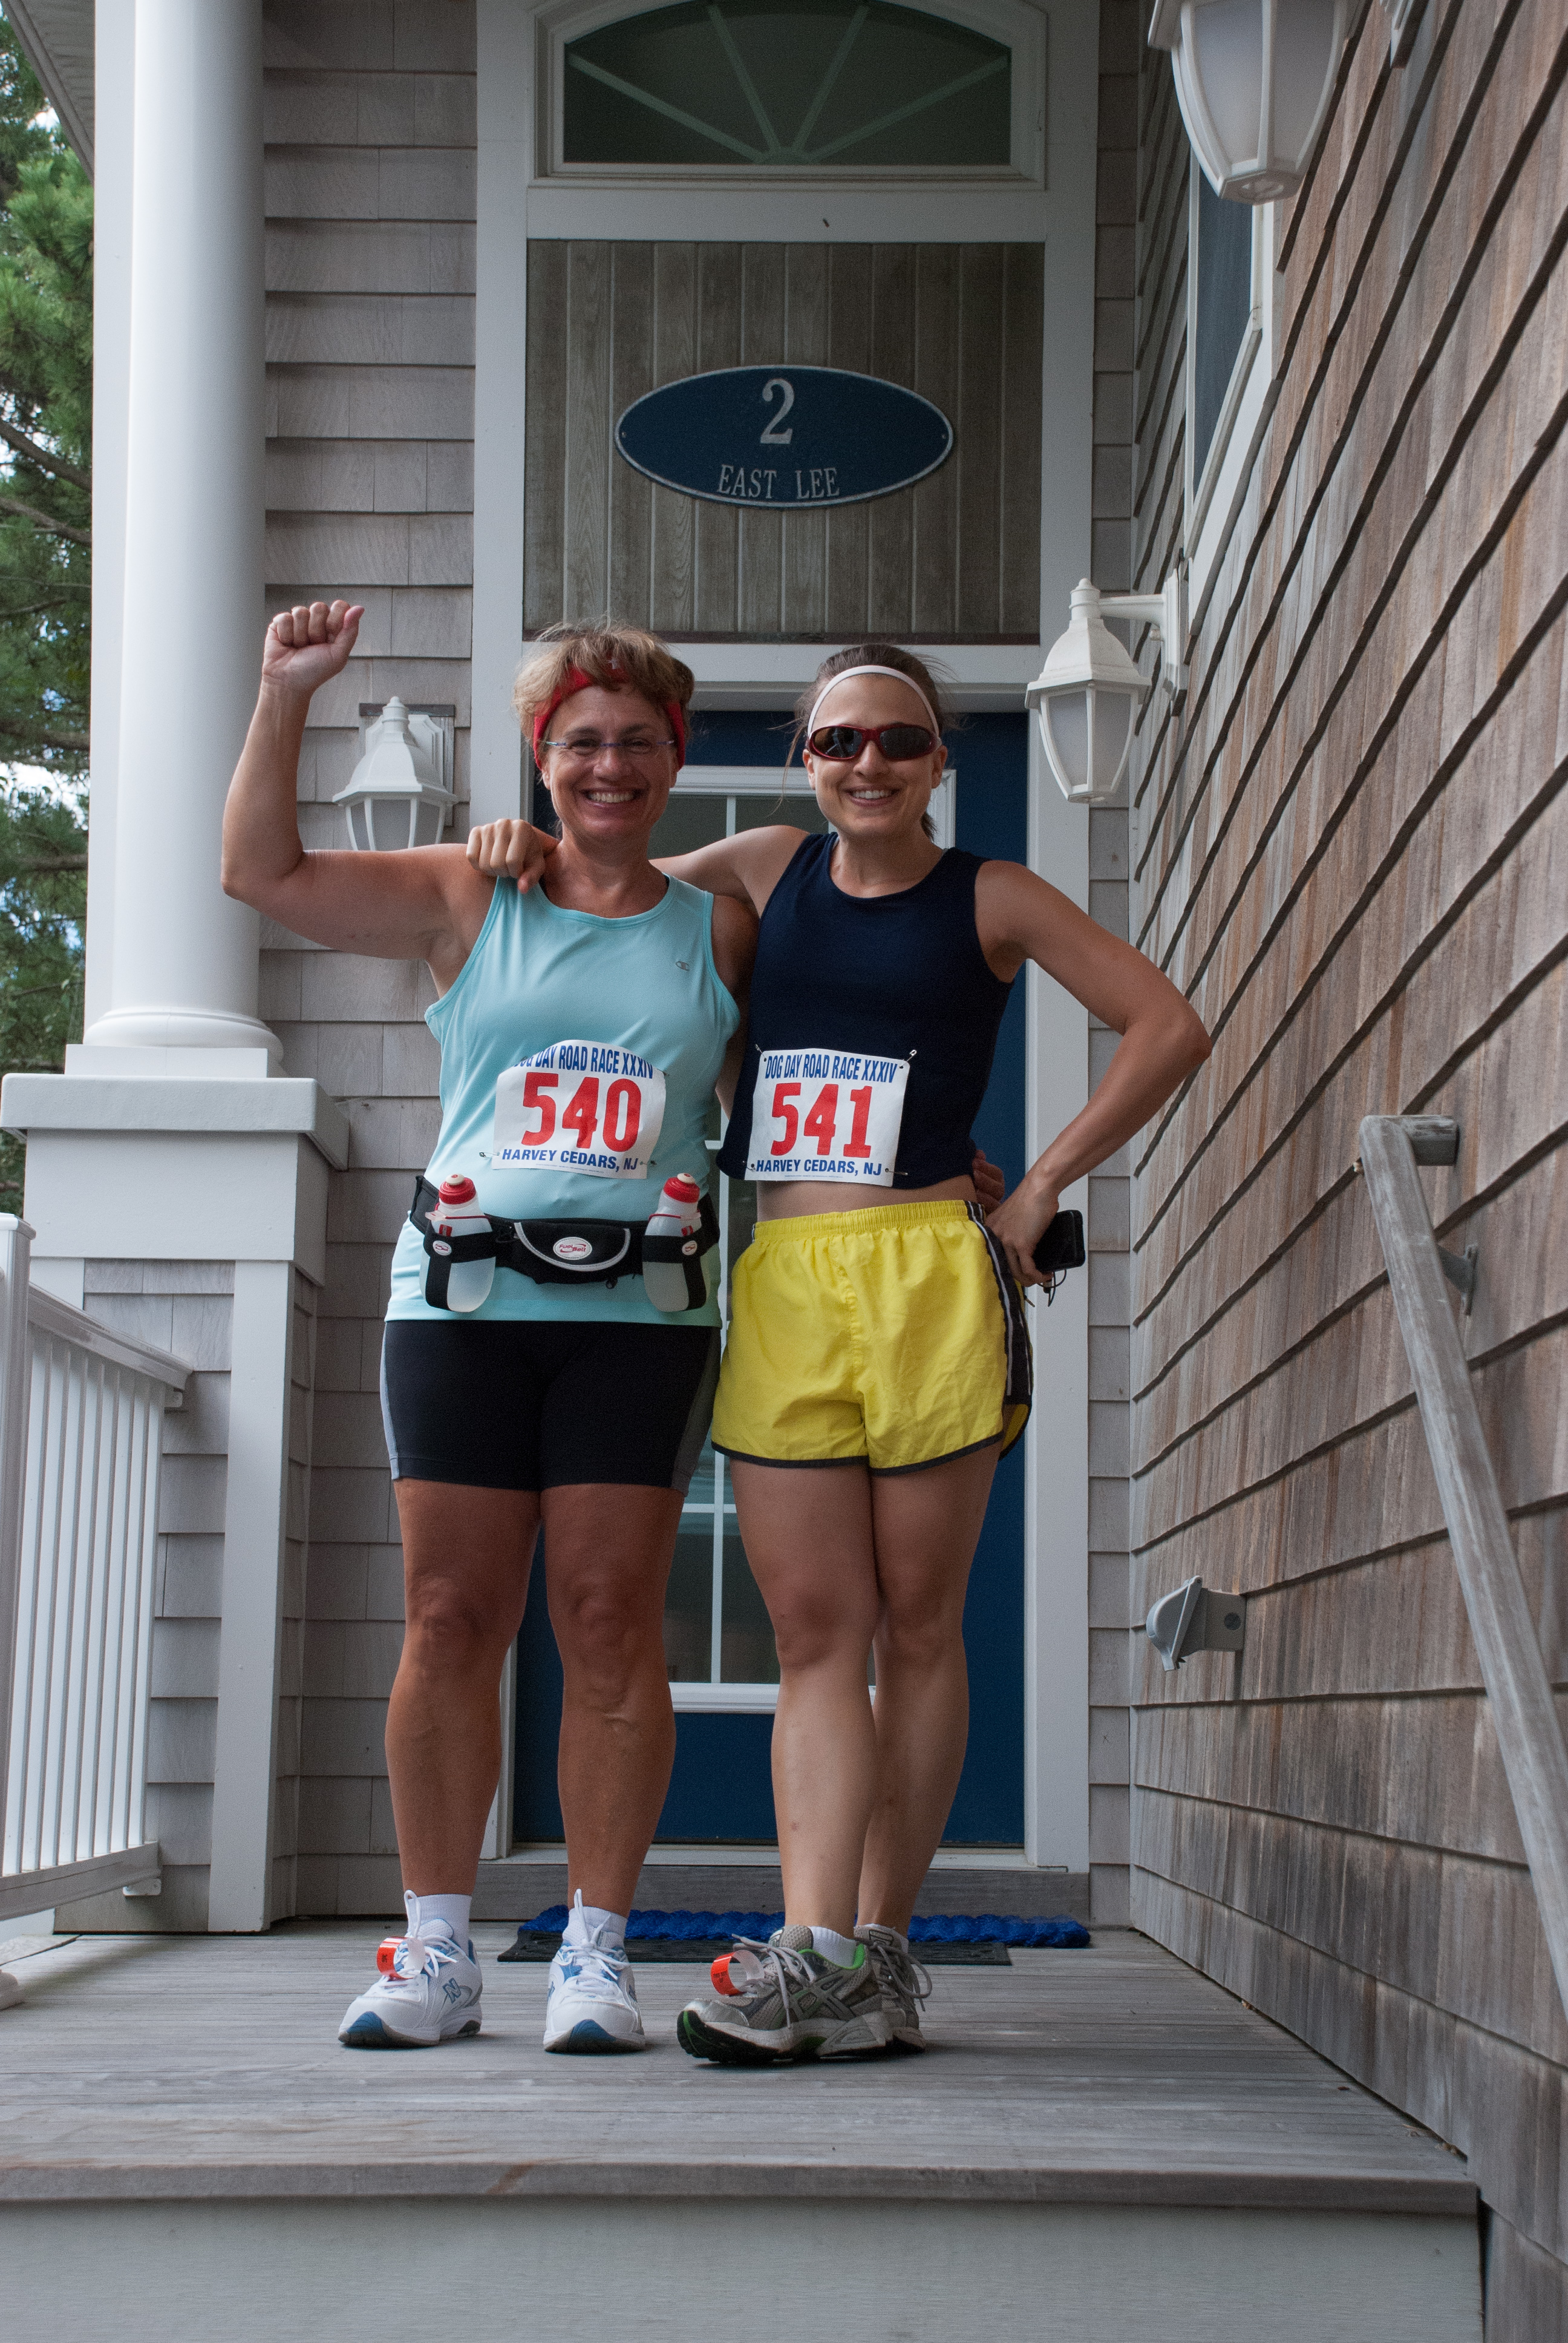 DSC_9962.jpg - Jayne and Jackie ready for the 2012 Harvey Cedars Dog Day Race.